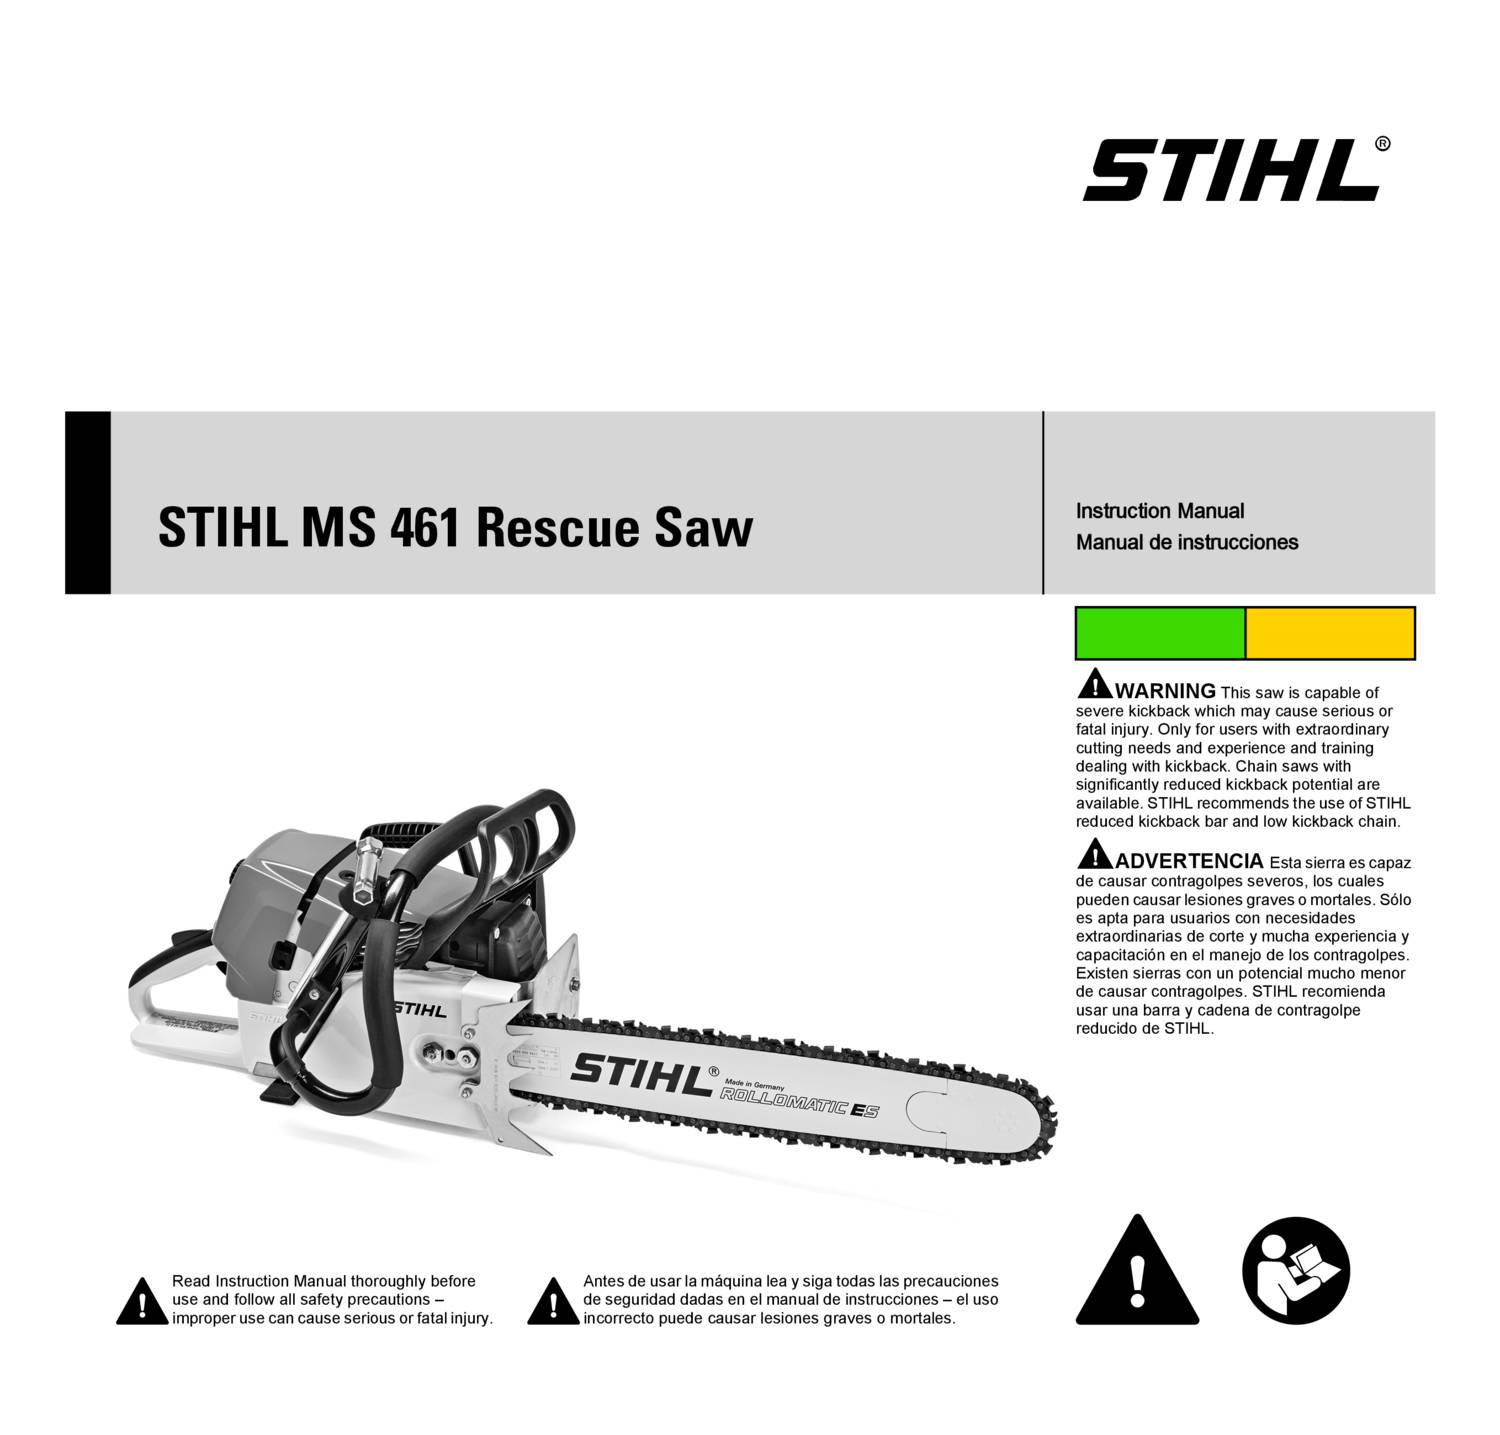 STIHL-MS-461-Rescue-Owners-Instruction-Manual.pdf   DocDroid